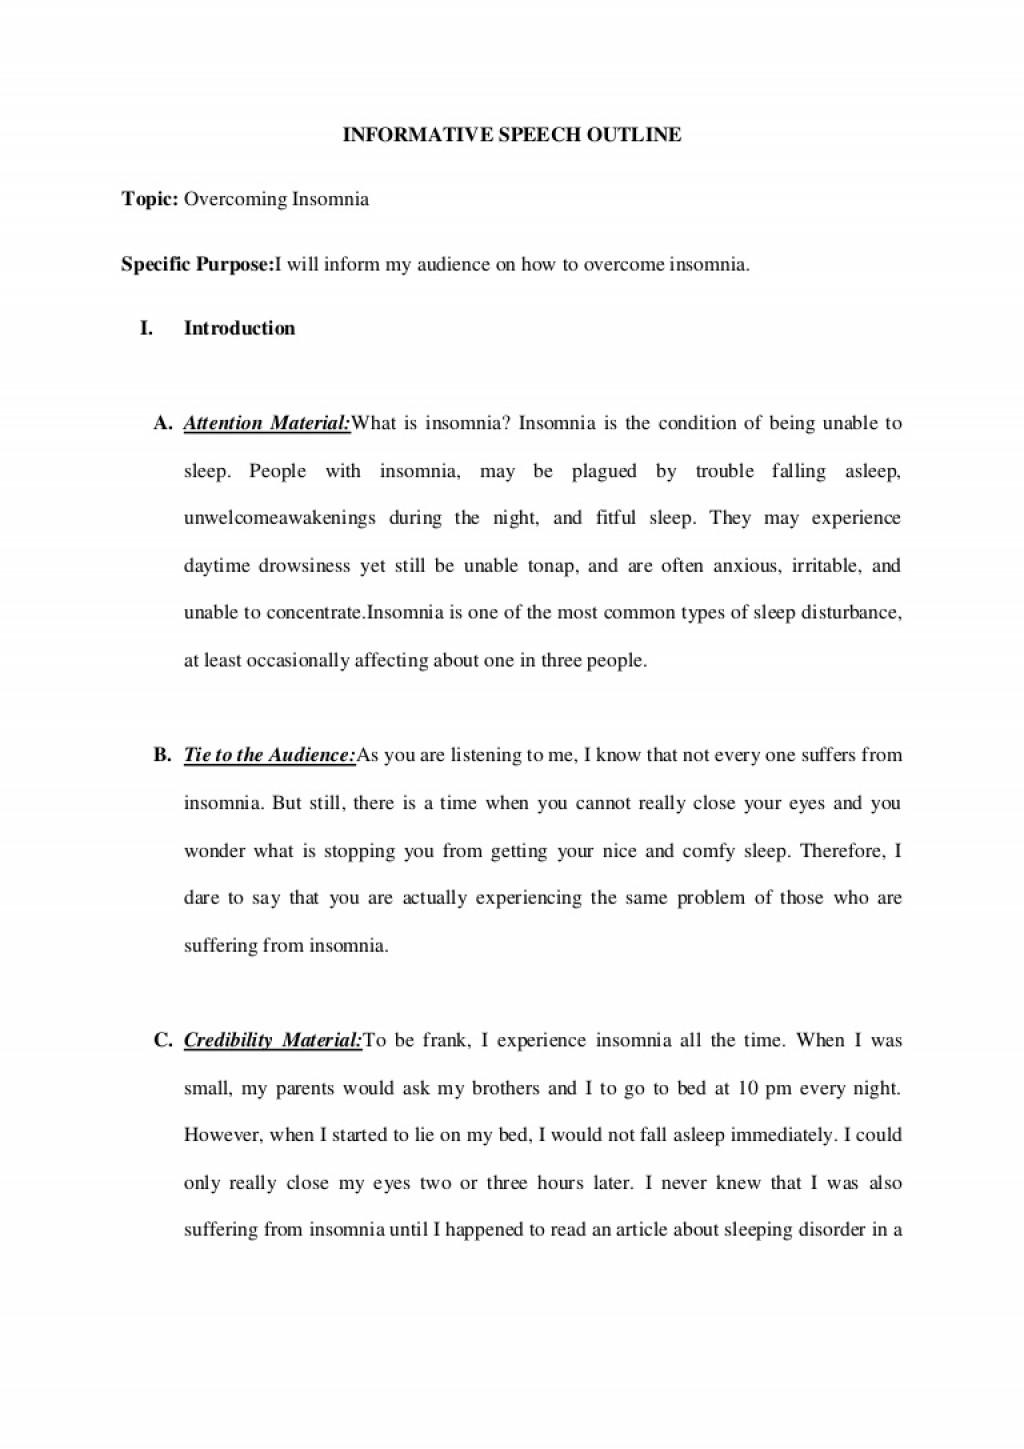 010 Informativespeechoutlineovercomeinsomnia Phpapp02 Thumbnail Essay Example Animal Fearsome Abuse Cruelty Questions Spm Paper Topics Large